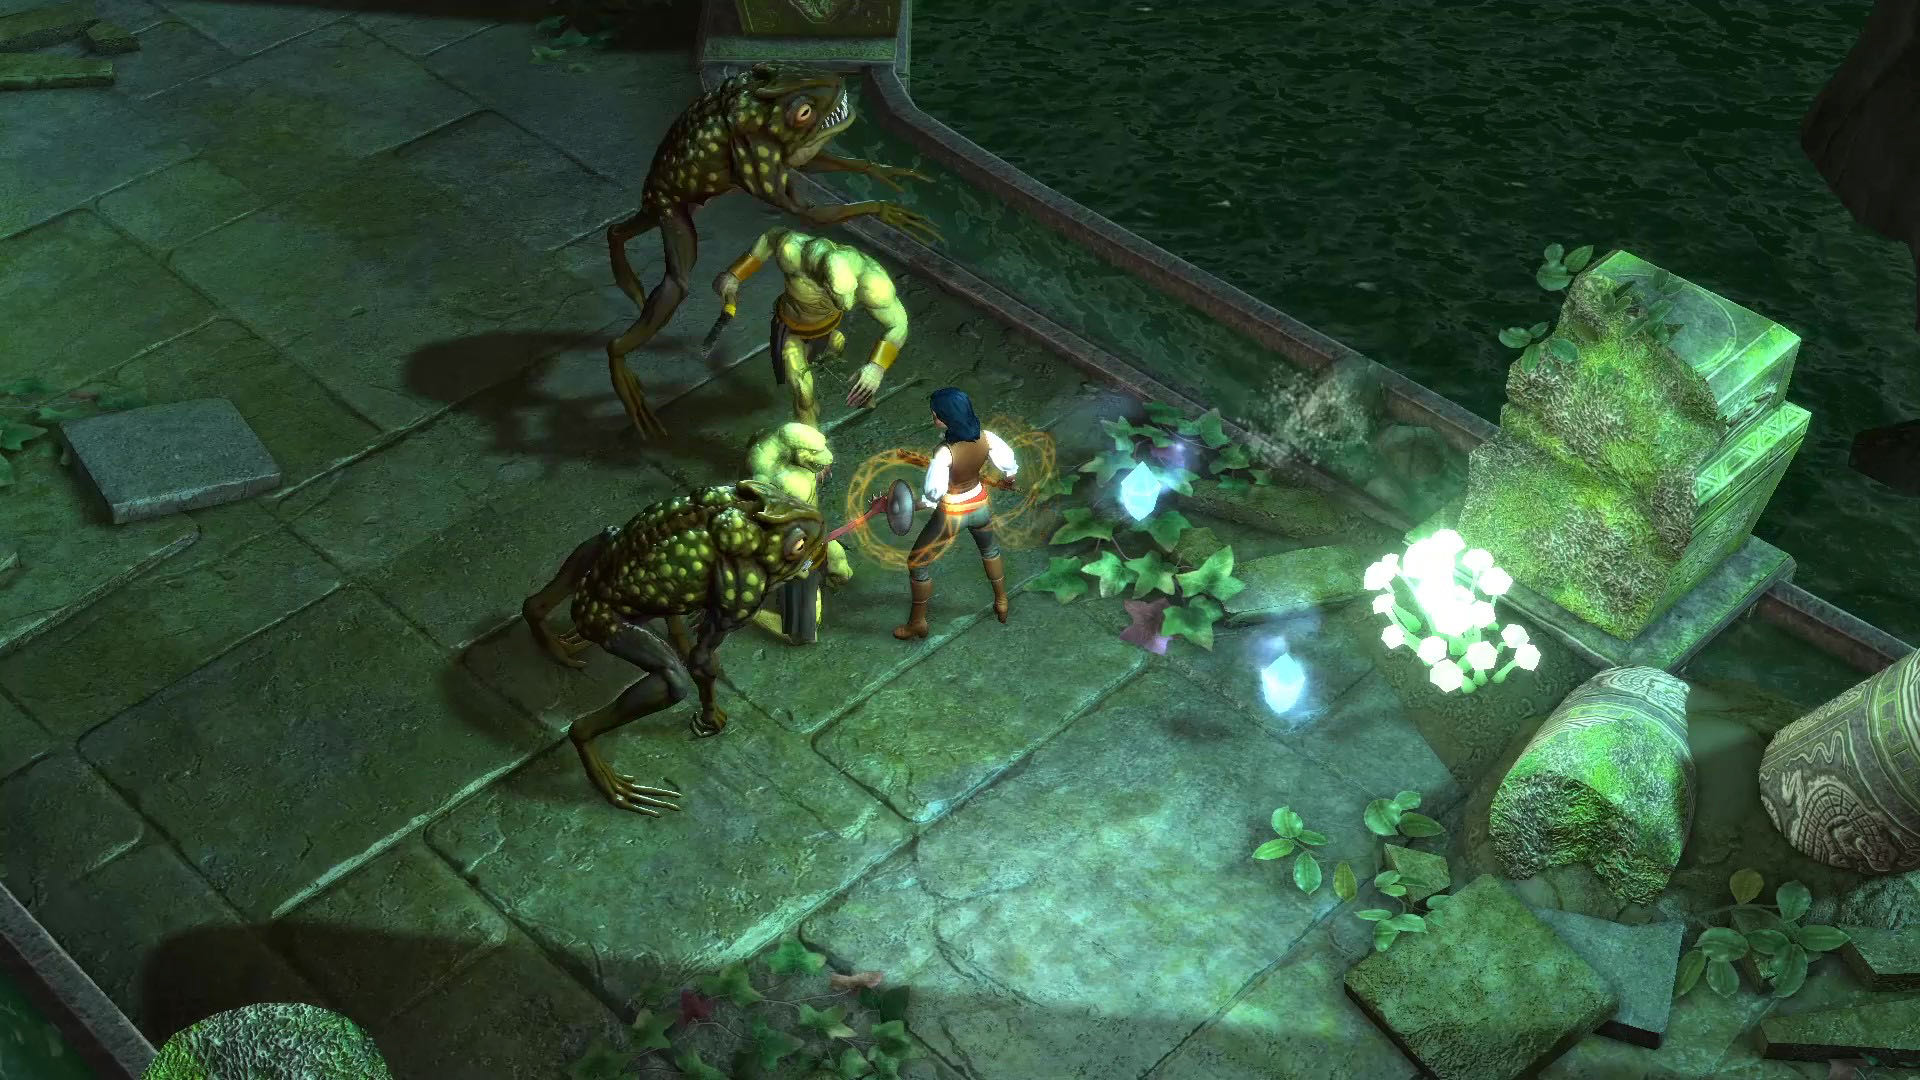 A screenshot of Aluna, surrounded by frog- and orc-like enemies.